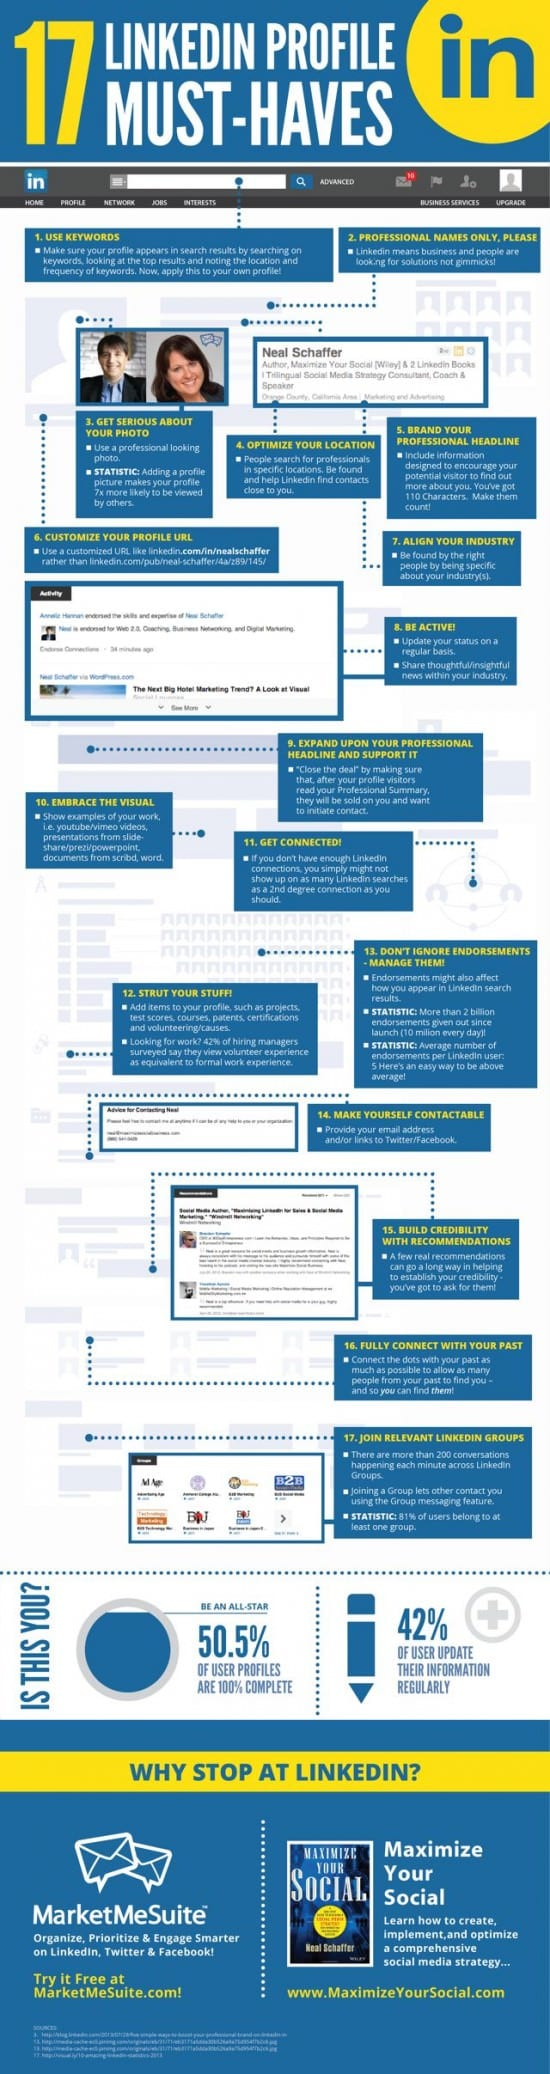 LinkedIn17musthavesinfographic